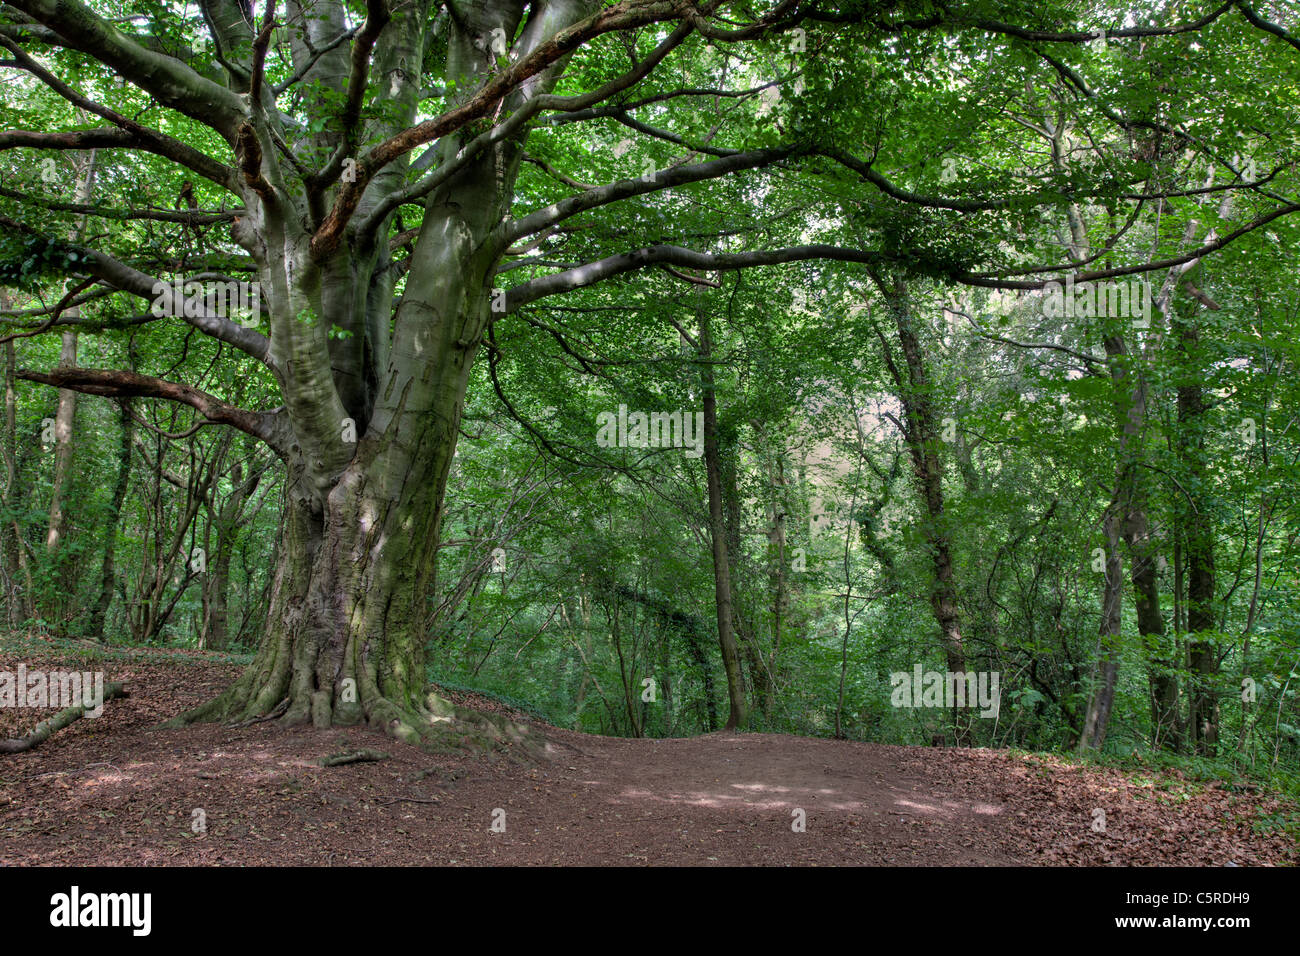 Anston Stones Wood, Nottinghamshire. An ancient woodland and Site of Special Scientific Interest (SSSI) - Stock Image